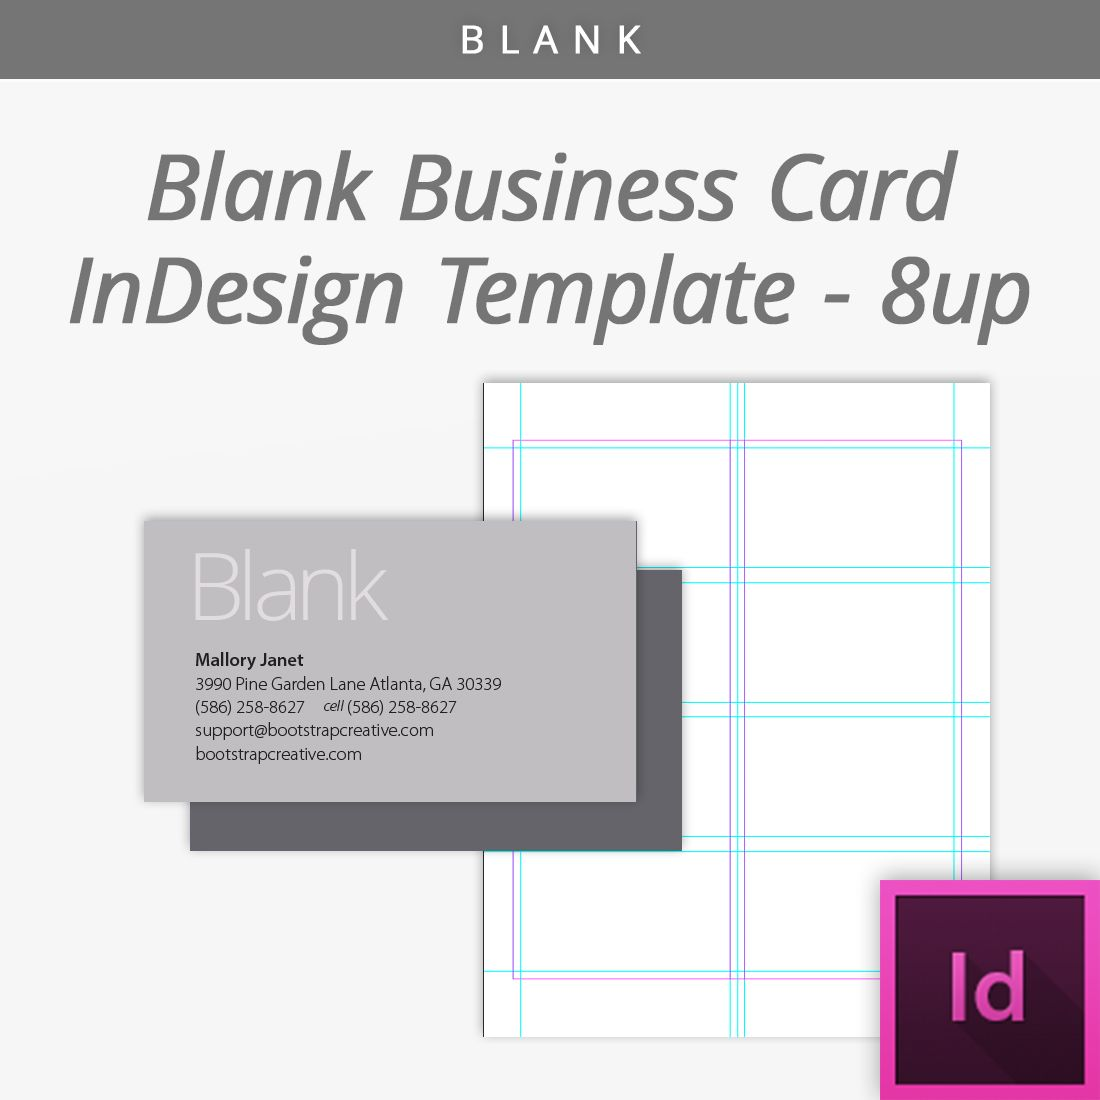 Blank indesign business card template 8 up free download blank indesign business card template 8 up free download designtemplate accmission Choice Image